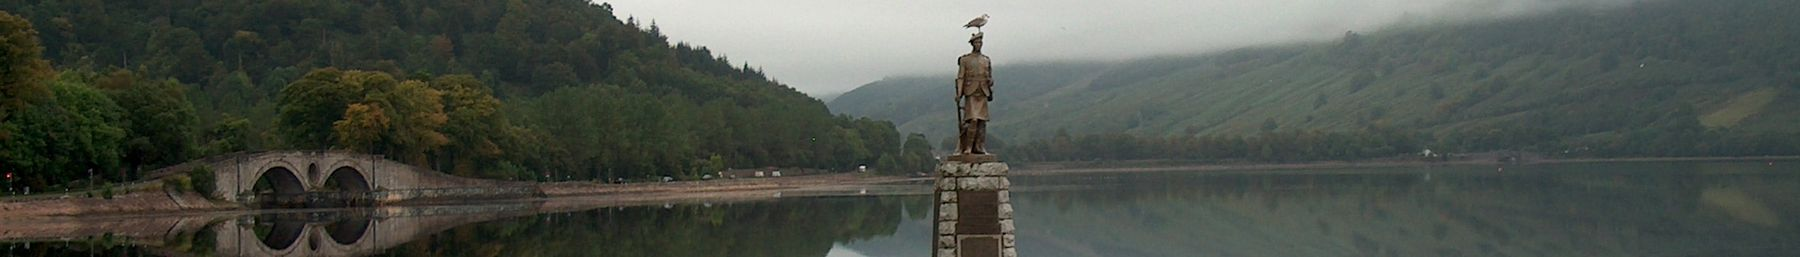 Inveraray bridge and war memorial.JPG